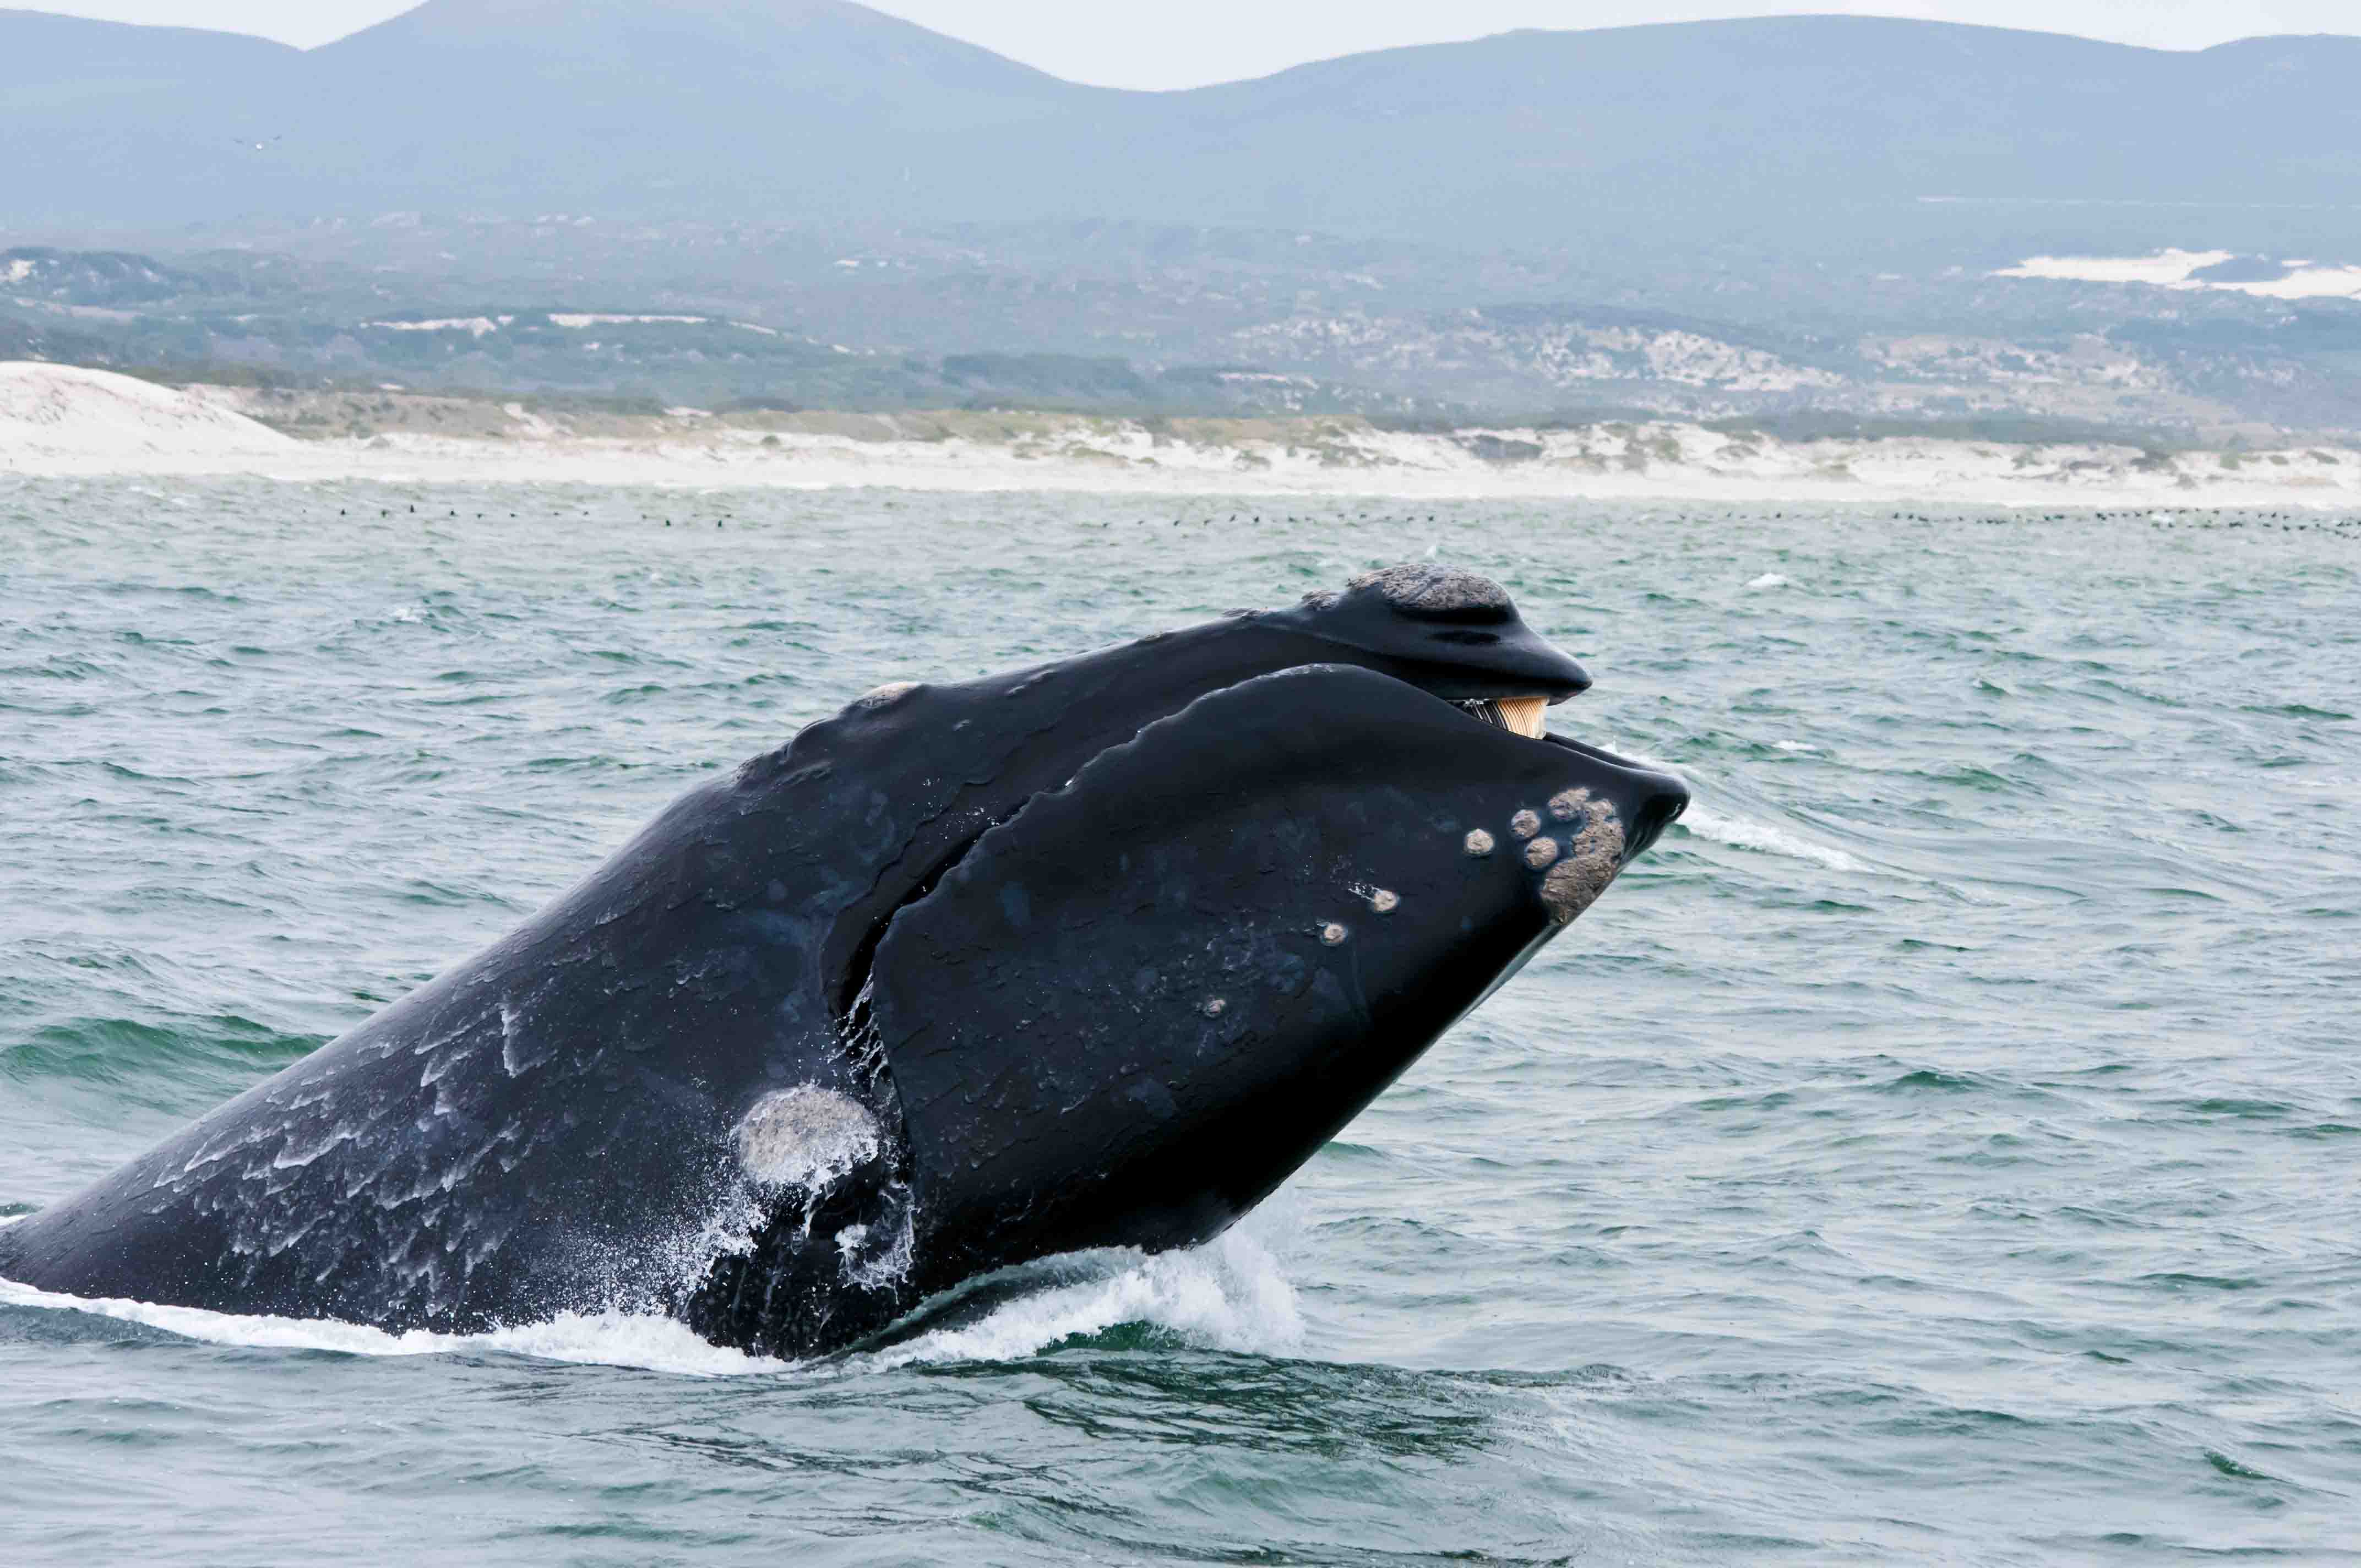 Southern Right Whale in Hermanus showing from water